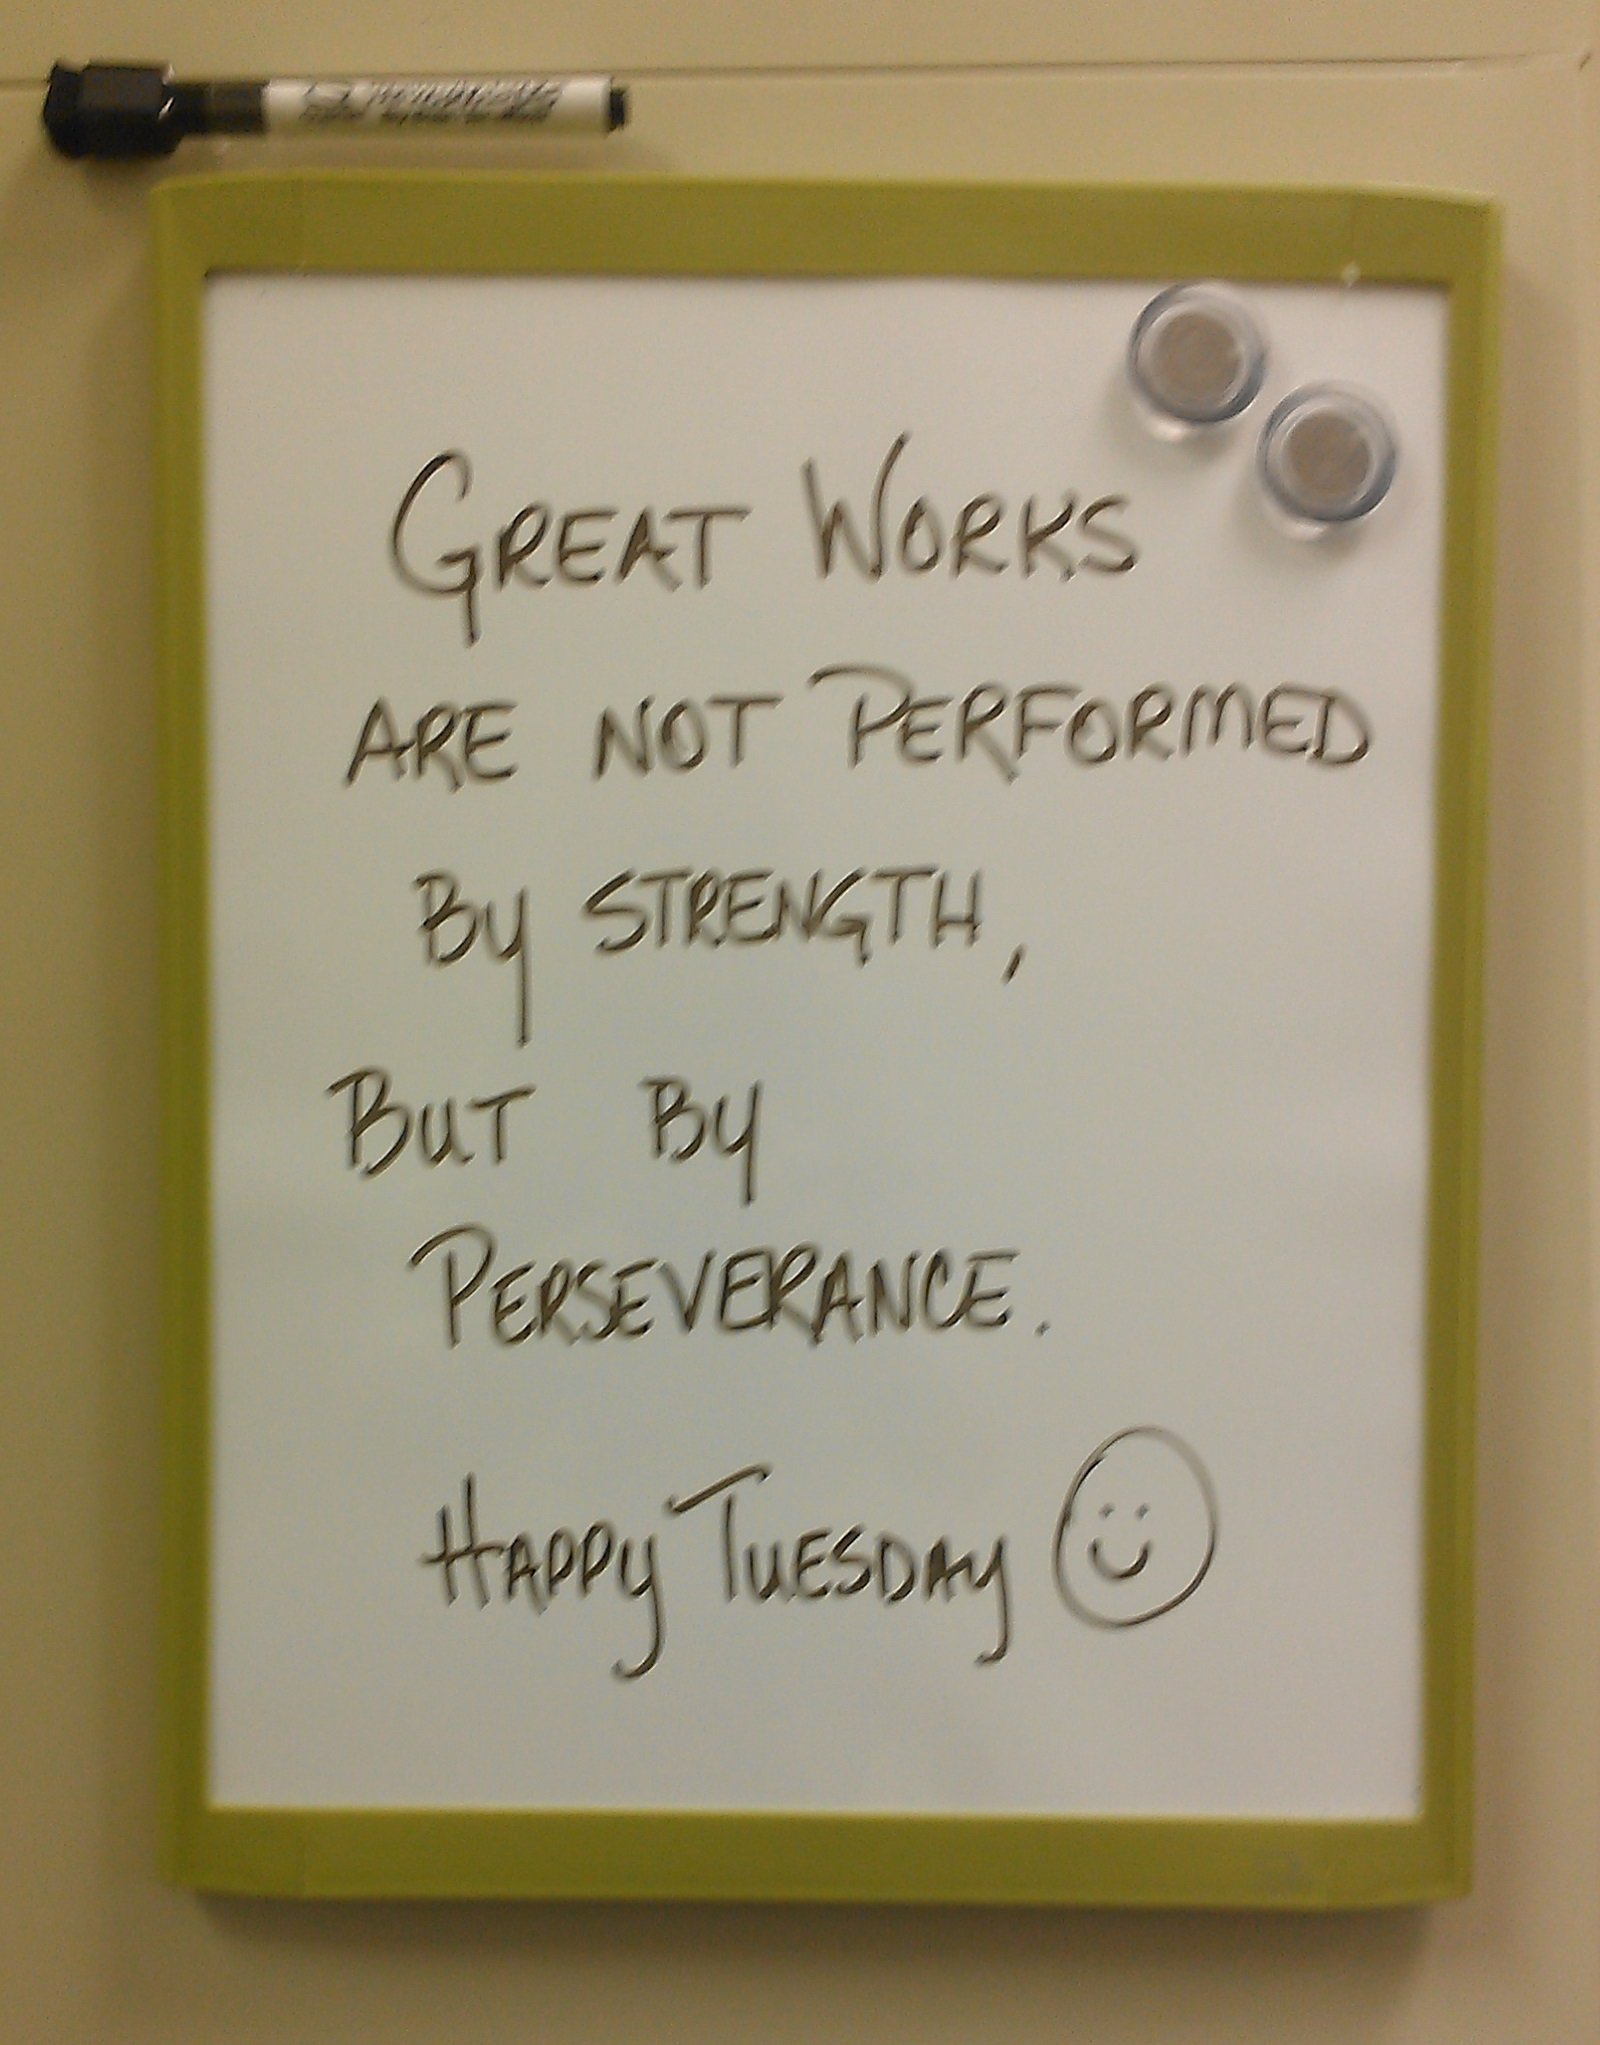 Tuesday Funny Work Quotes Quotesgram